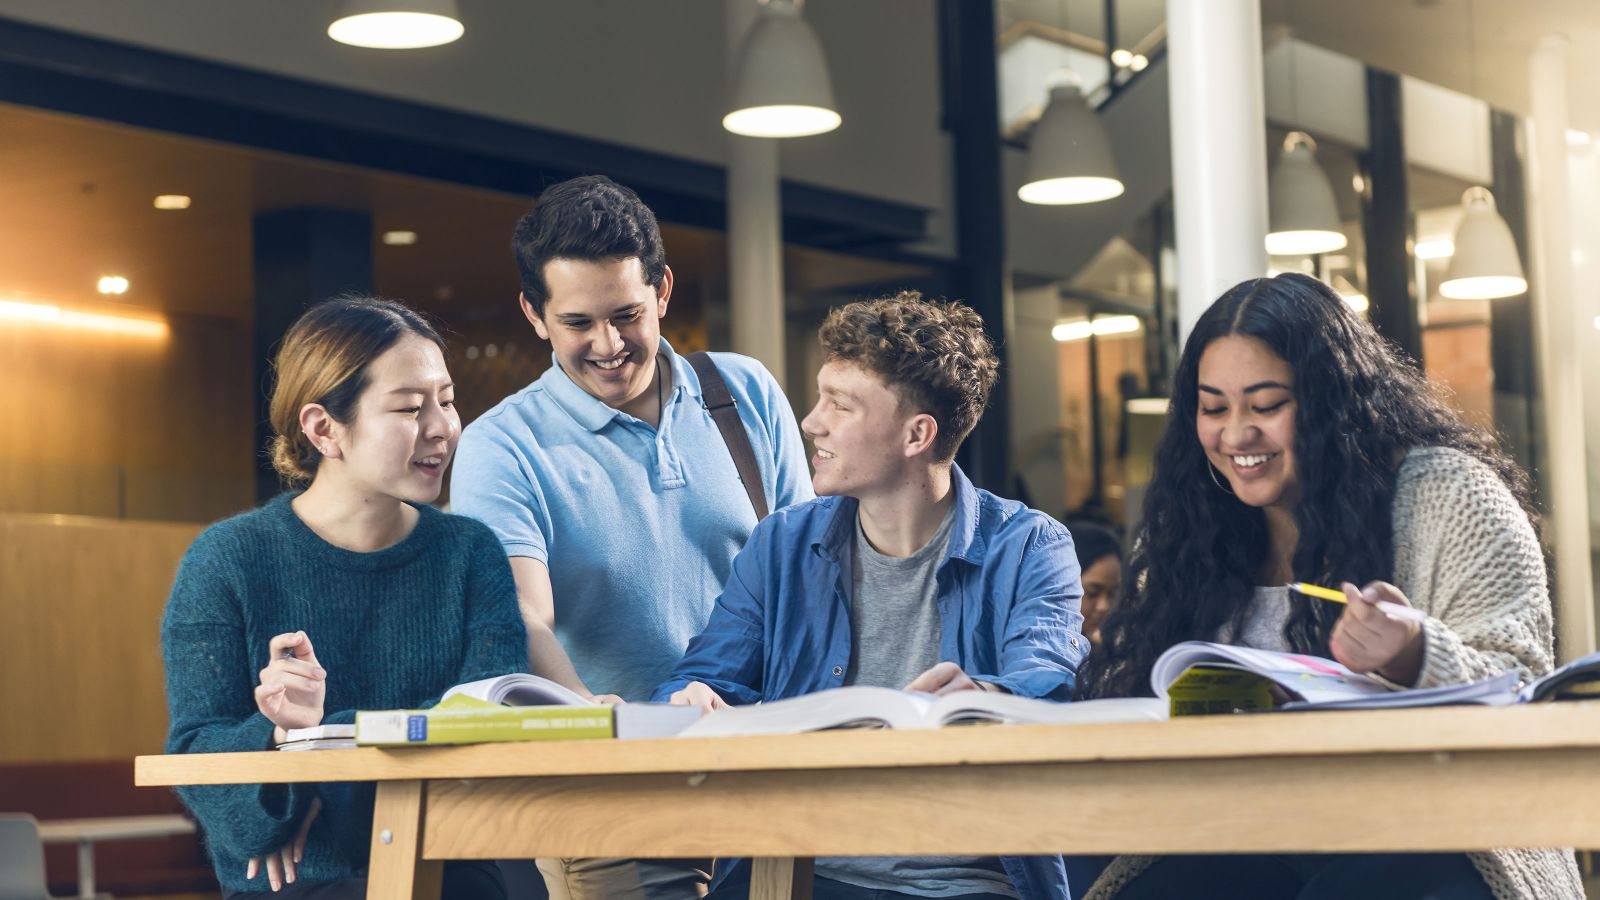 Four students, three sitting and one standing, study at a table with open text books on it.